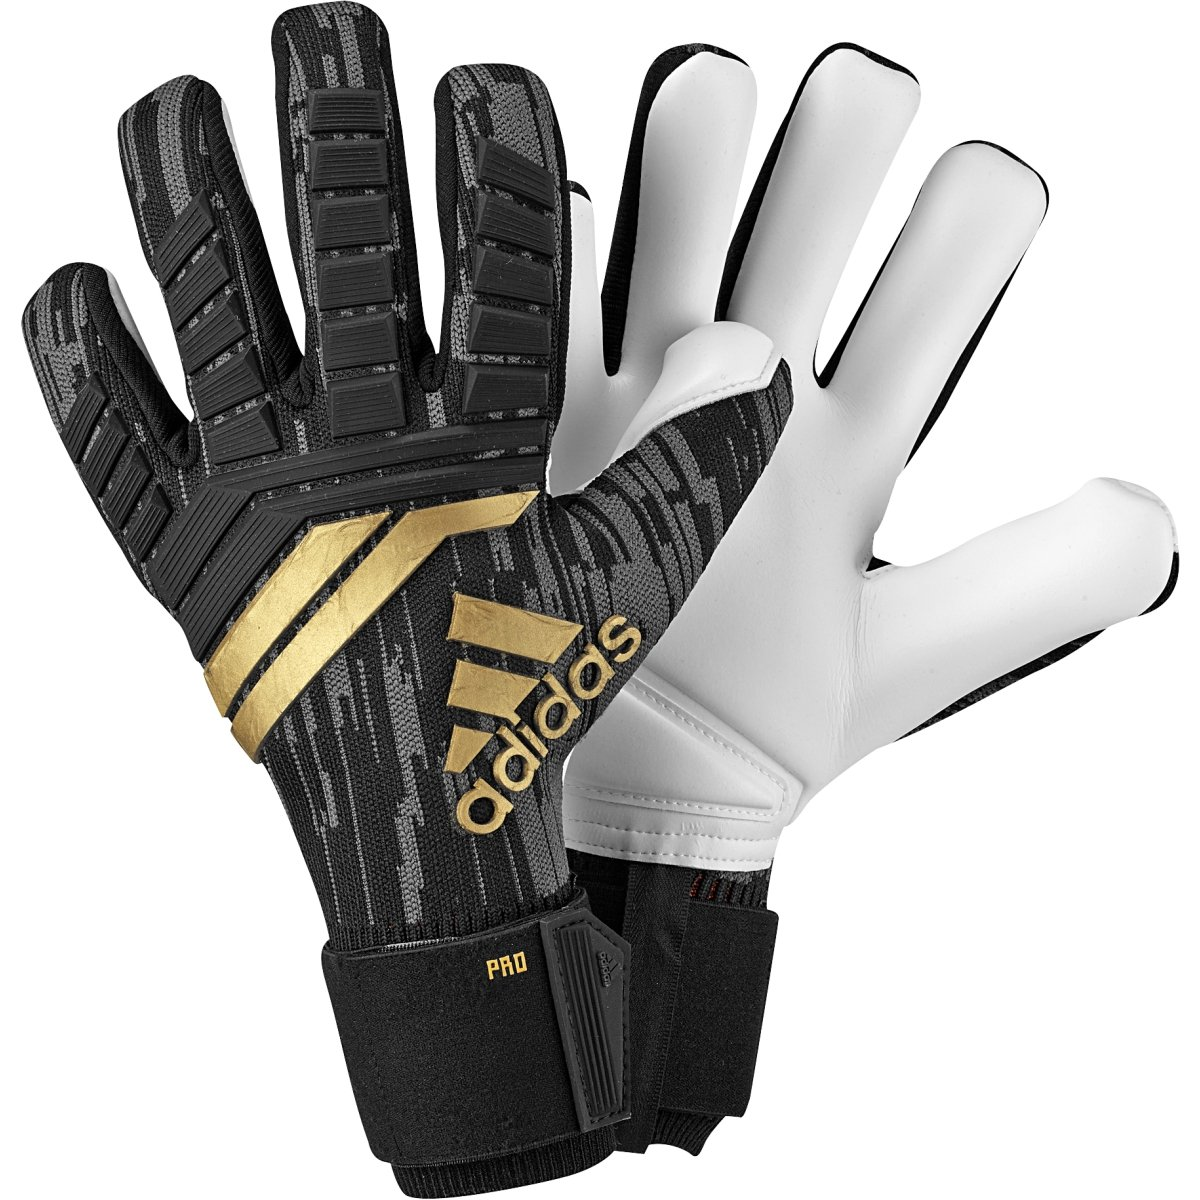 save off 9f0a5 32d10 Adidas Ace 18 Pro Goalkeeper Gloves Black/Gold 10 ...